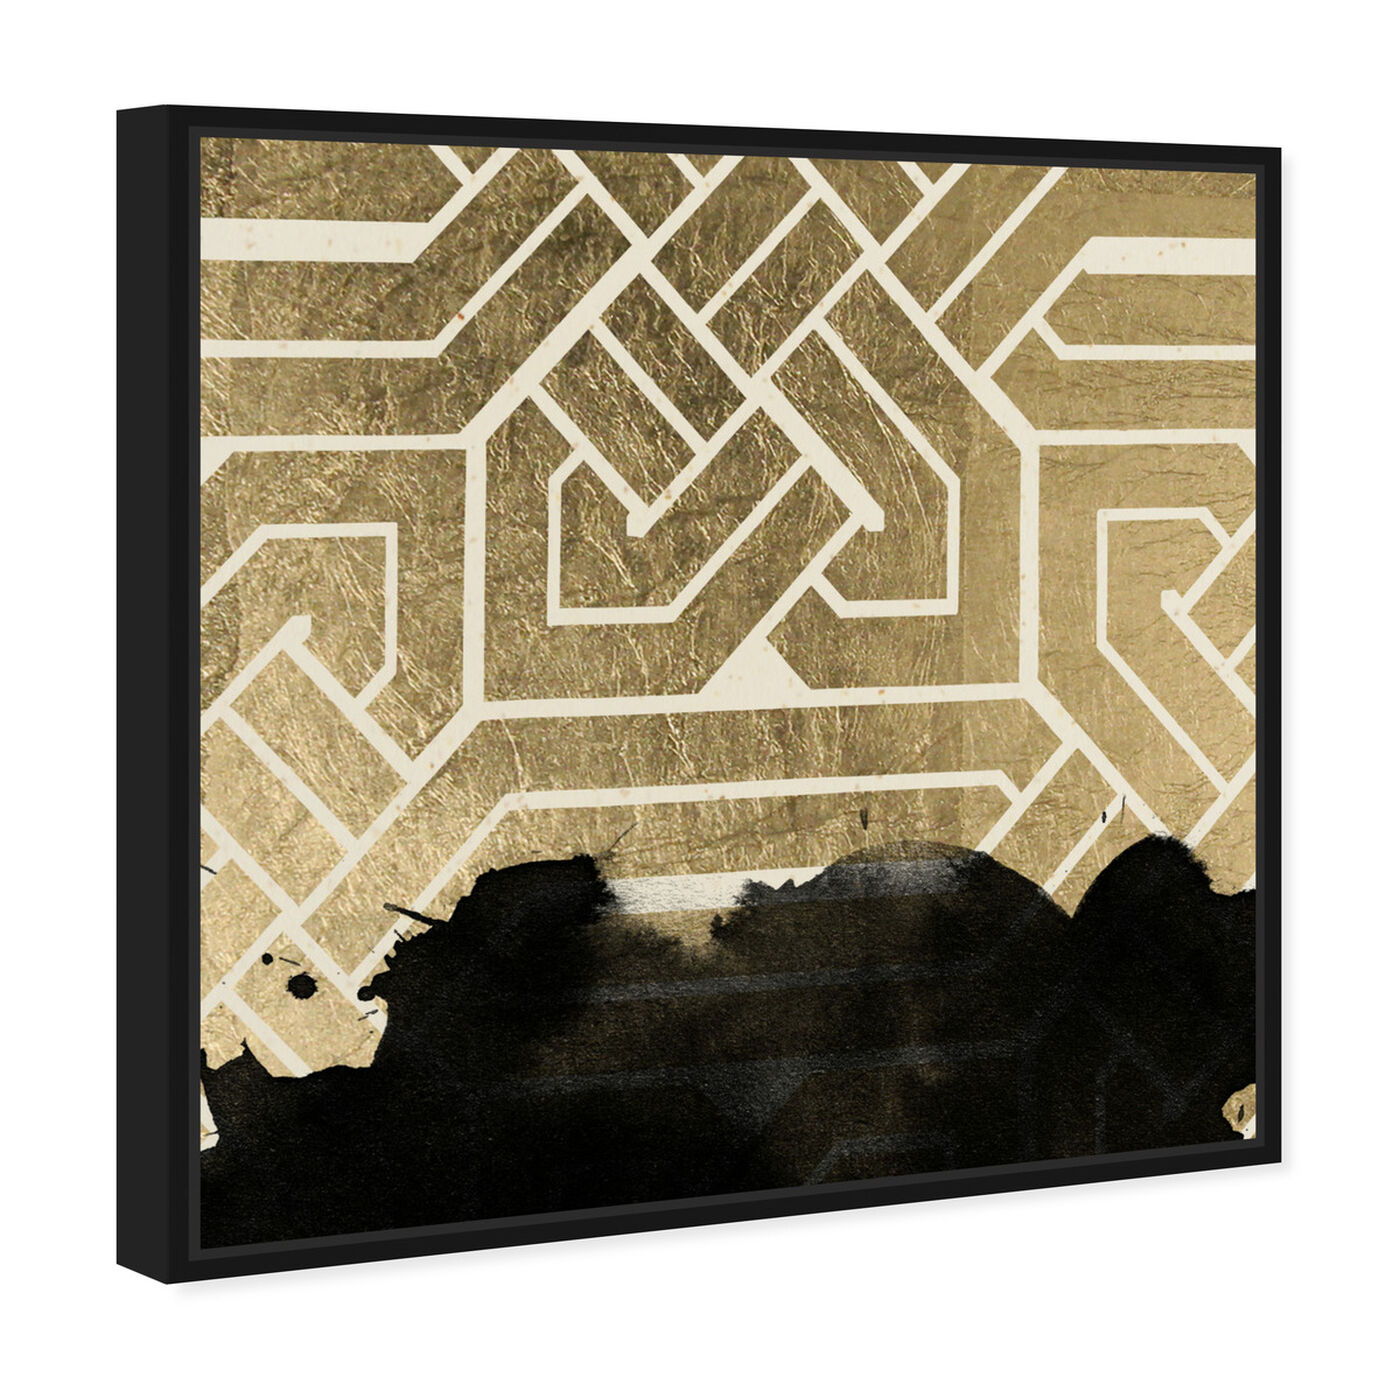 Angled view of Introspect Deco featuring abstract and shapes art.